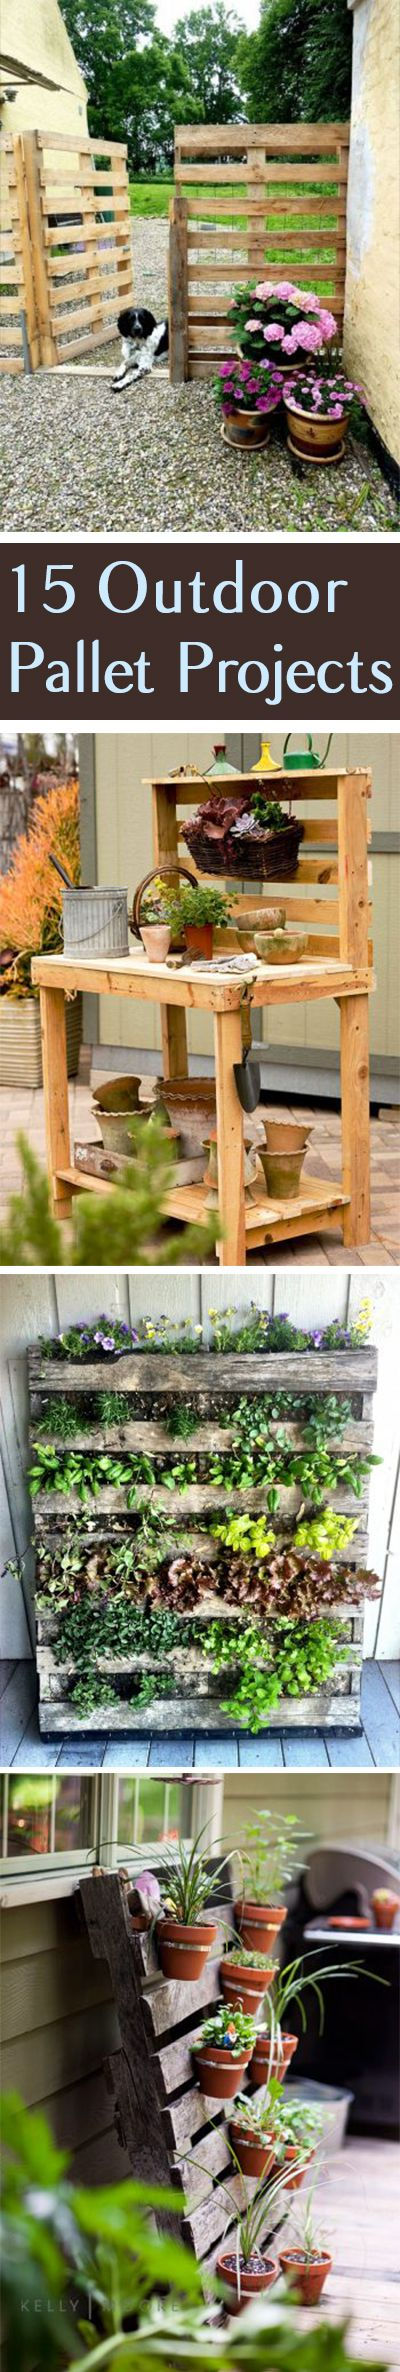 best 25+ outdoor projects ideas on pinterest | outdoor, fire pit